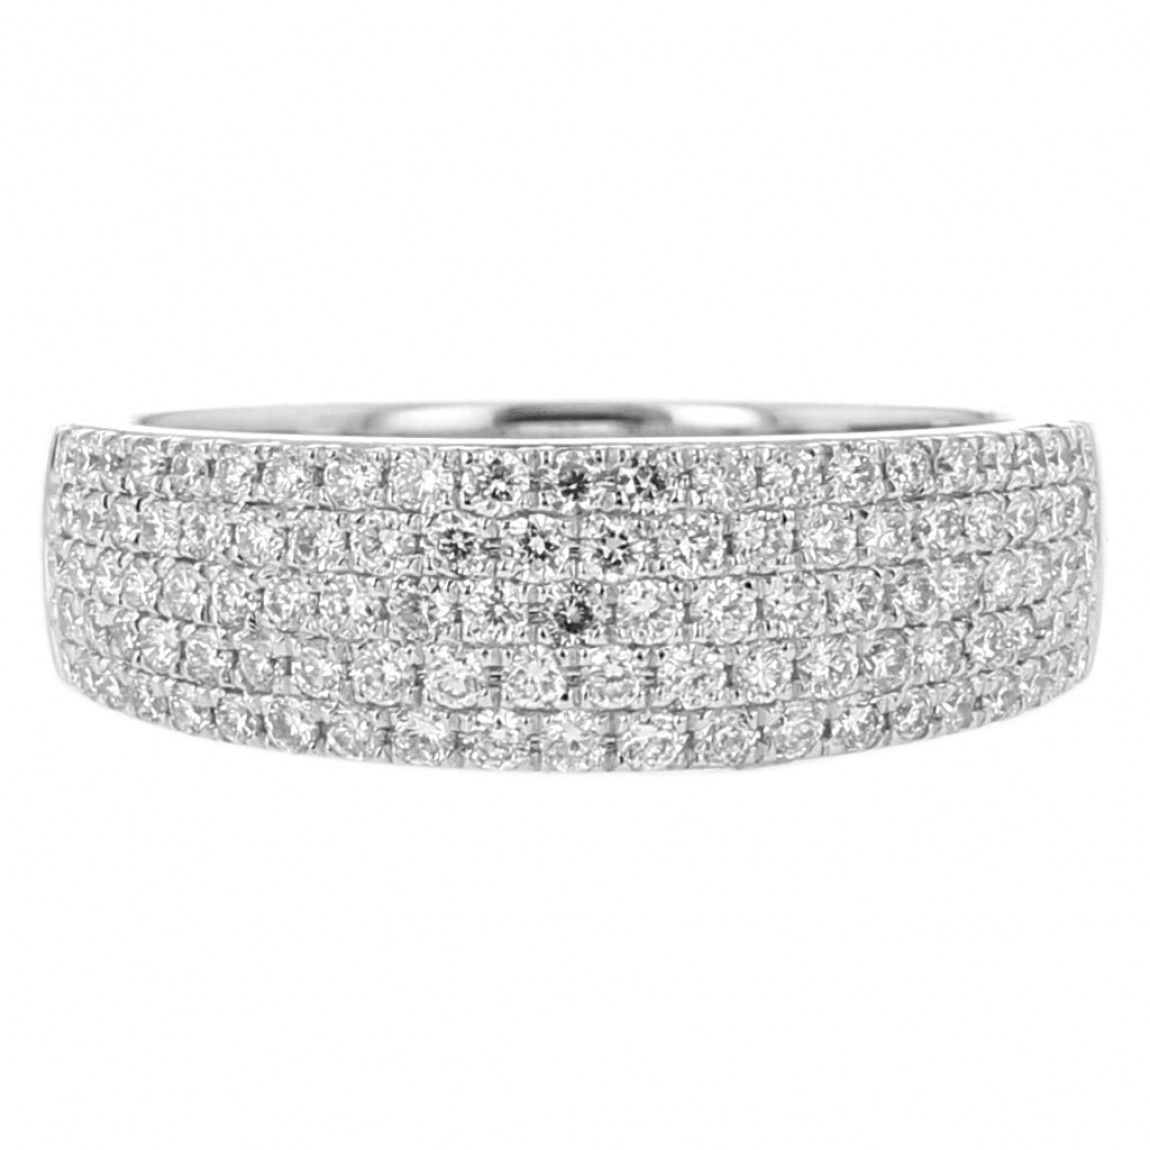 Diamond Pavé Fashion Band, 14k White Gold, (View 17 of 25)